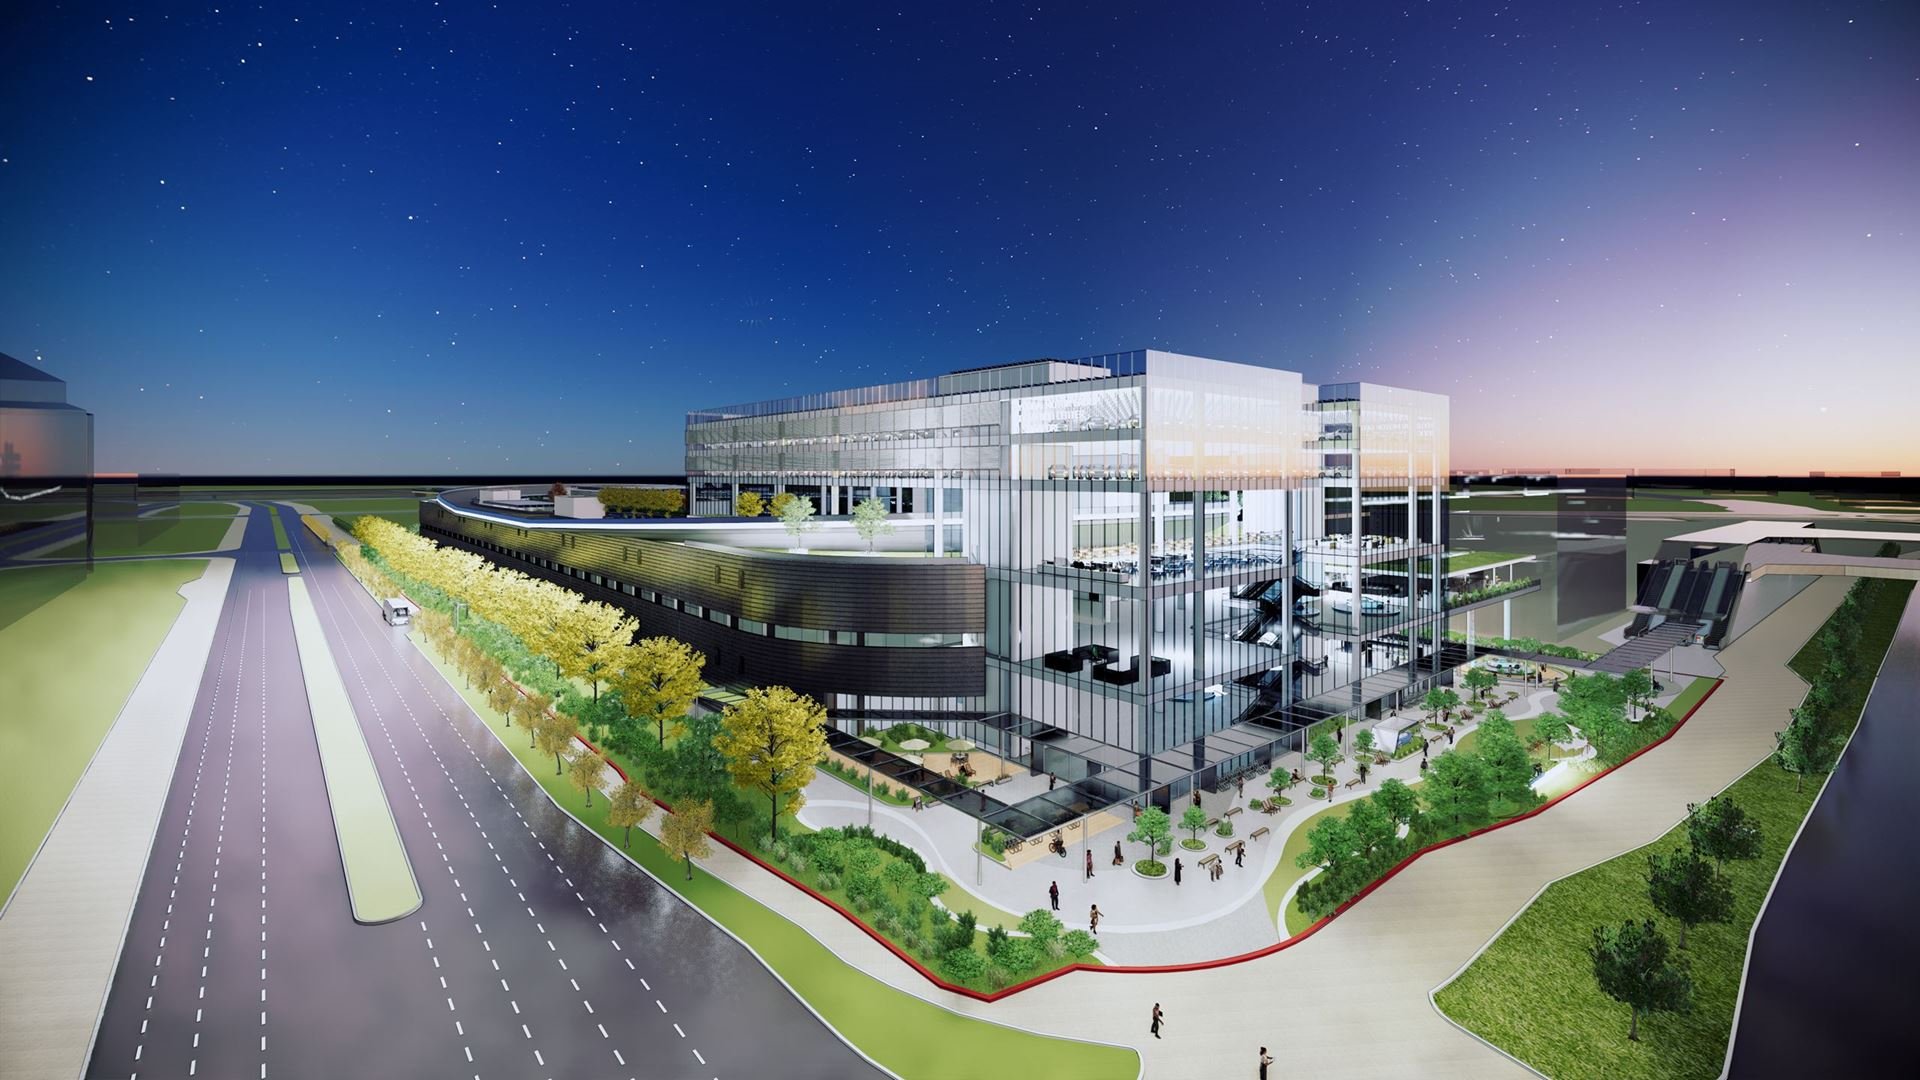 New Hyundai Motor Group Innovation Center in Singapore to Transform Customer Experience through Future Mobility R&D - Image 1